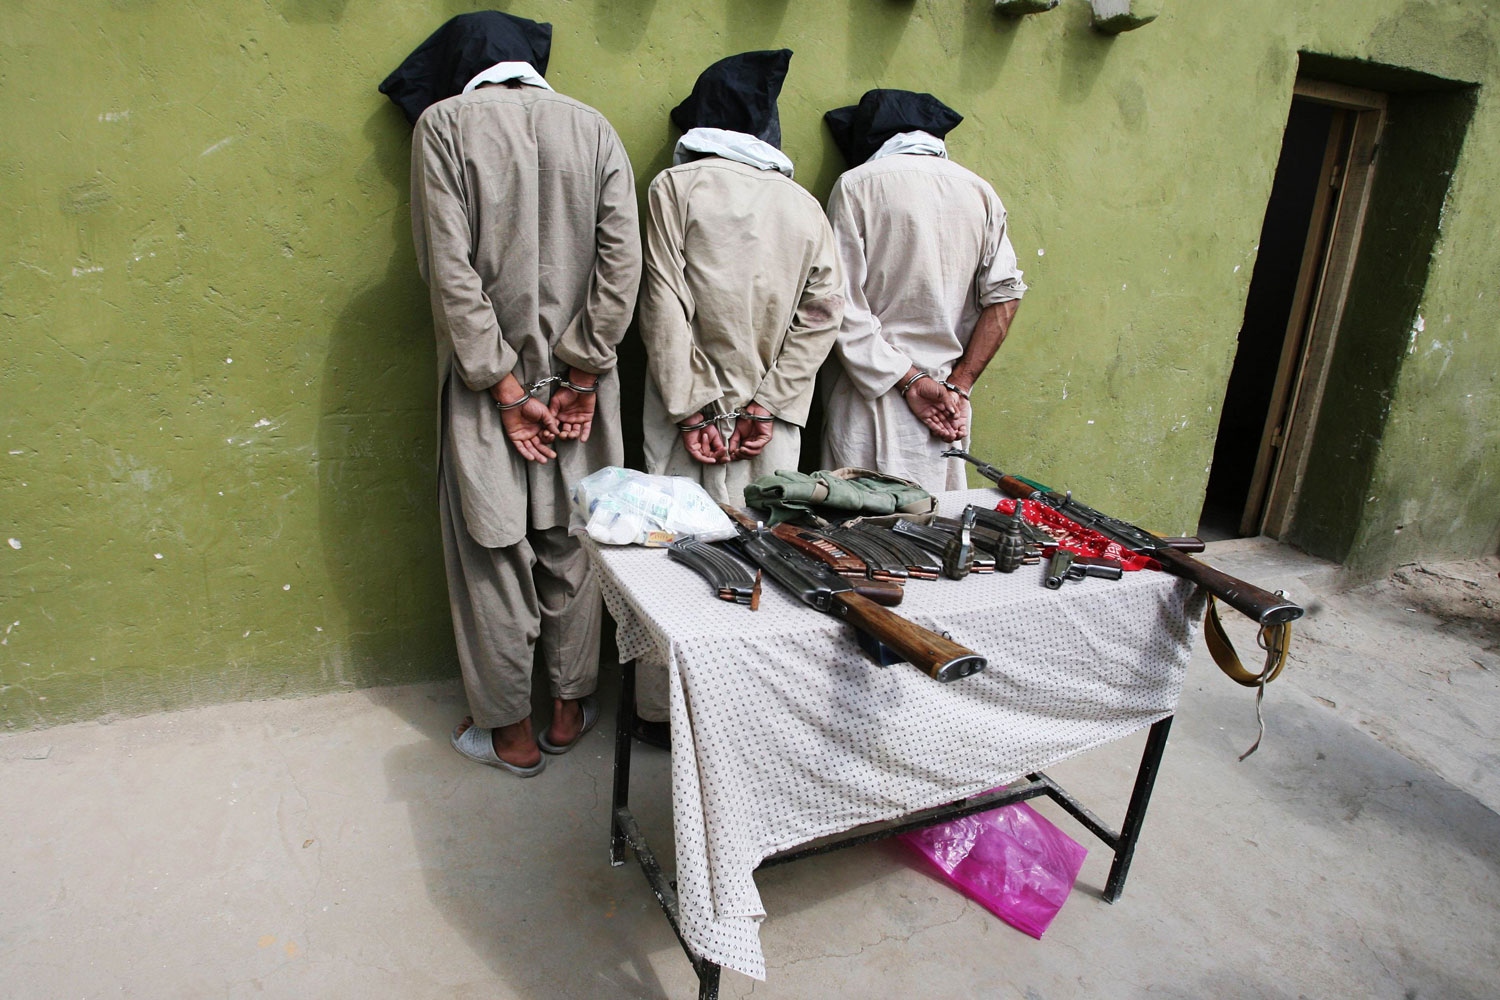 August 25, 2011. Three captured Taliban insurgents are presented to the media in Ghazni province, Afghanistan.